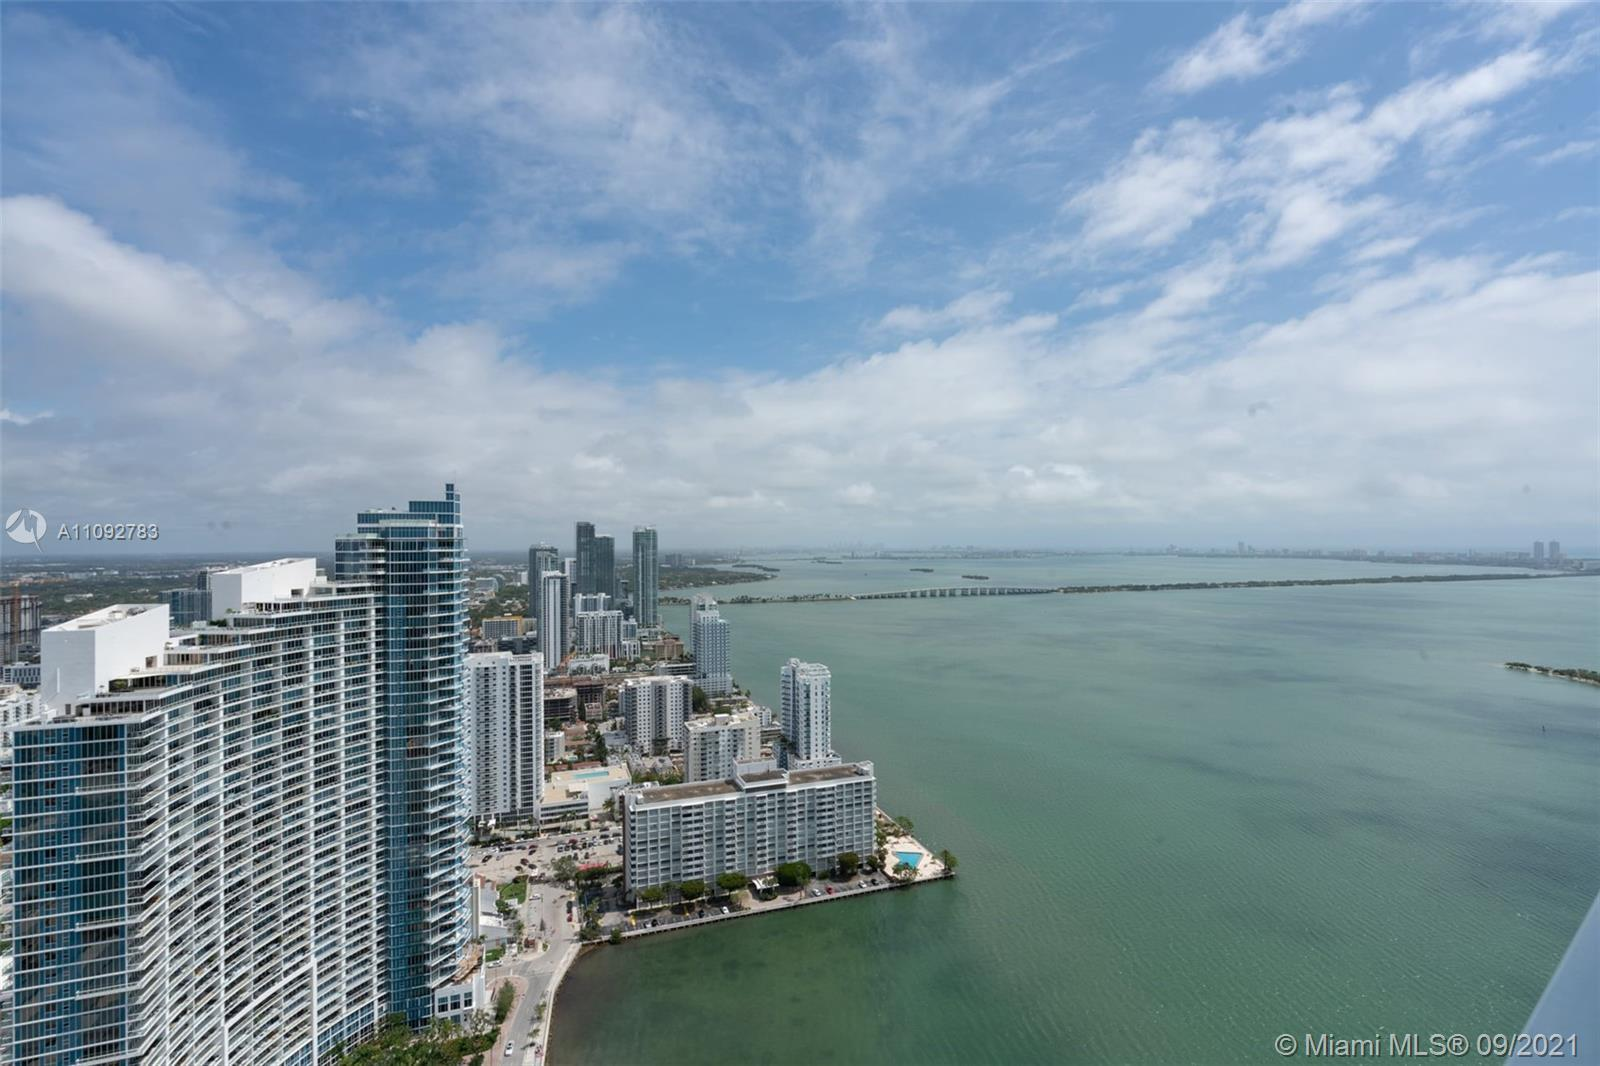 STUNNING 3 BED, 2.5 BATH, 49TH FLOOR PENTHOUSE WITH AMAZING OCEAN, BAY & SUNSET VIEWS LOCATED IN THE